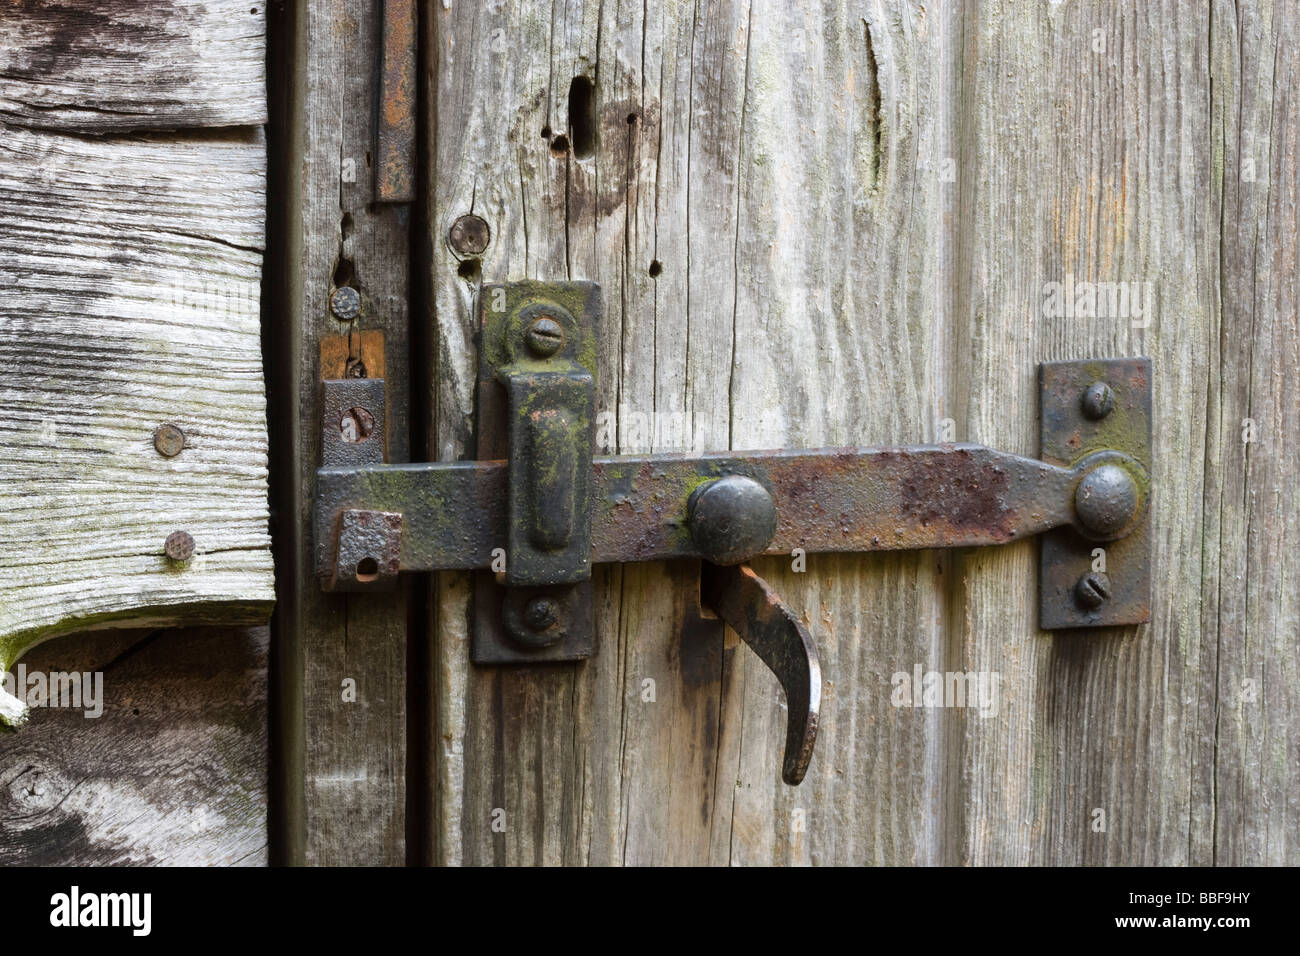 Latch and lock on old shed door. - Stock Image